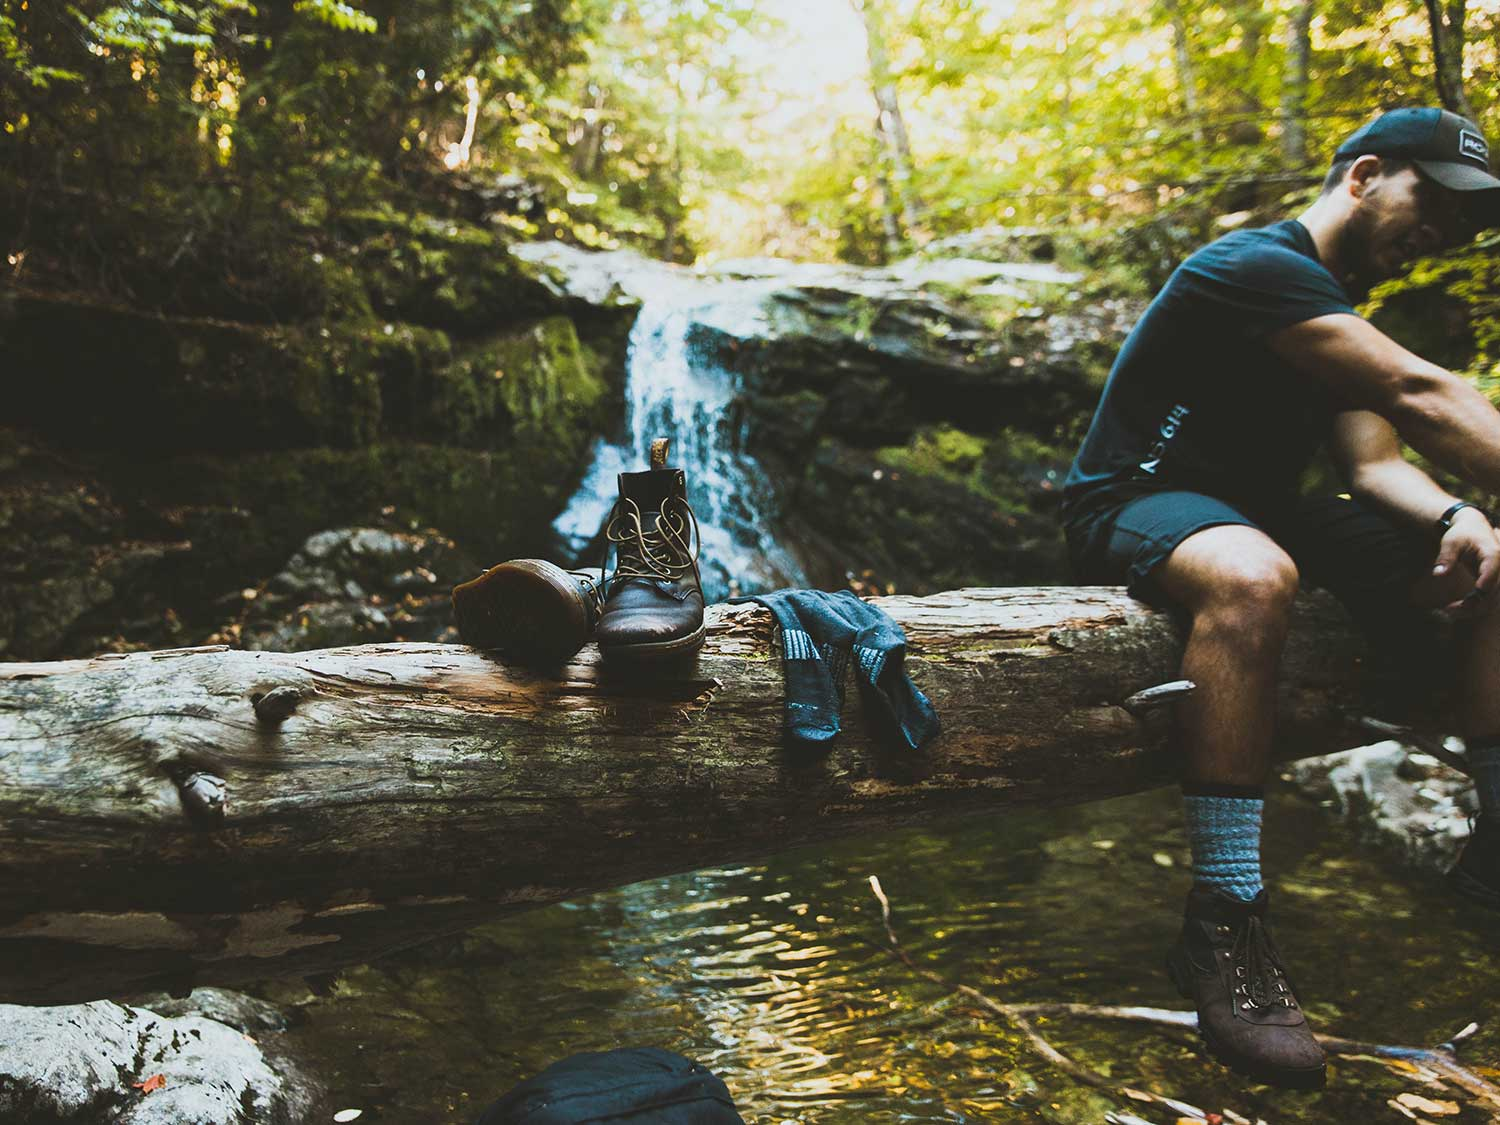 Man sitting on log over river with hiking socks and boots.